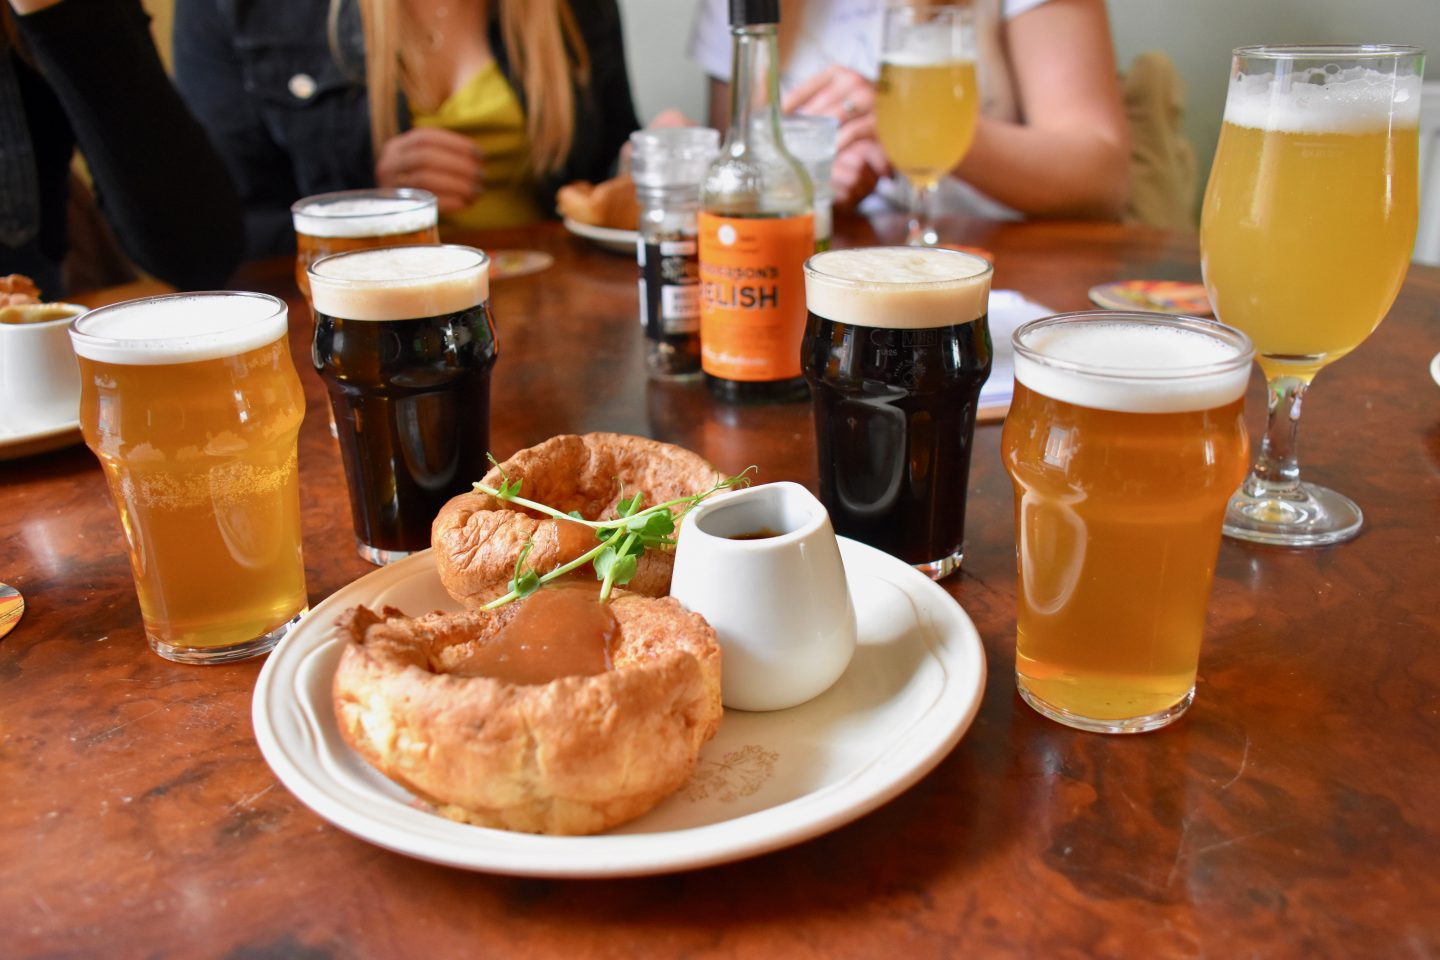 Leeds Food Tours, what to do in Leeds: A plate of Yorkshire puddings surrounded by pints of local beer, on a wooden table